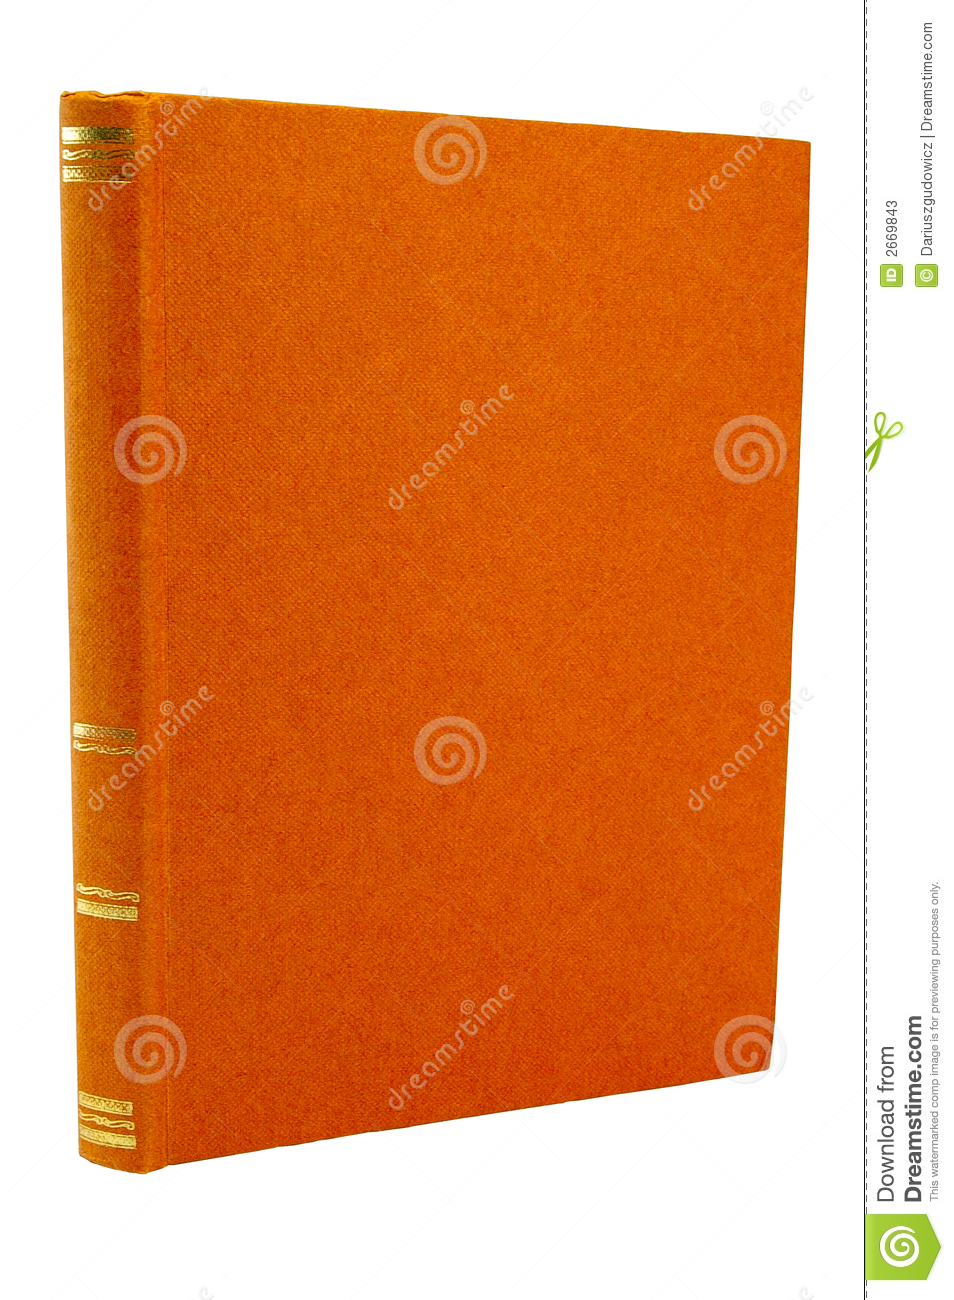 Book Cover Stock Photography : Old orange book cover stock image of paper